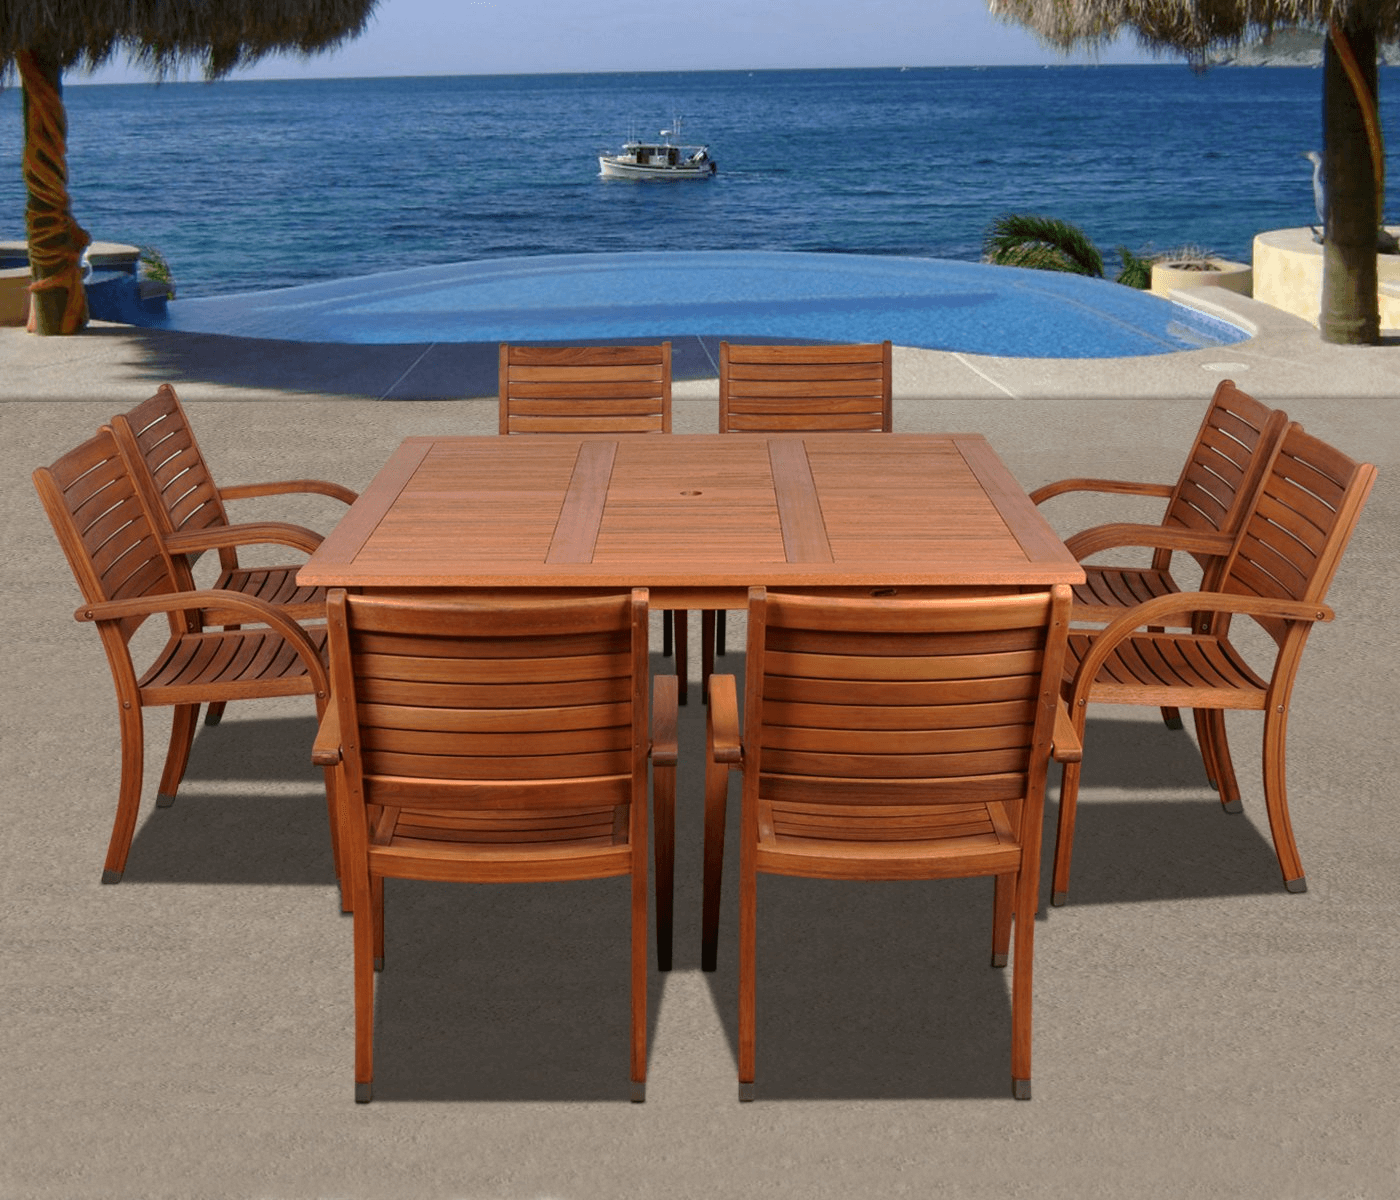 PATIO FURNITURE SET WITH CLASSIC WOODEN MATERIALS